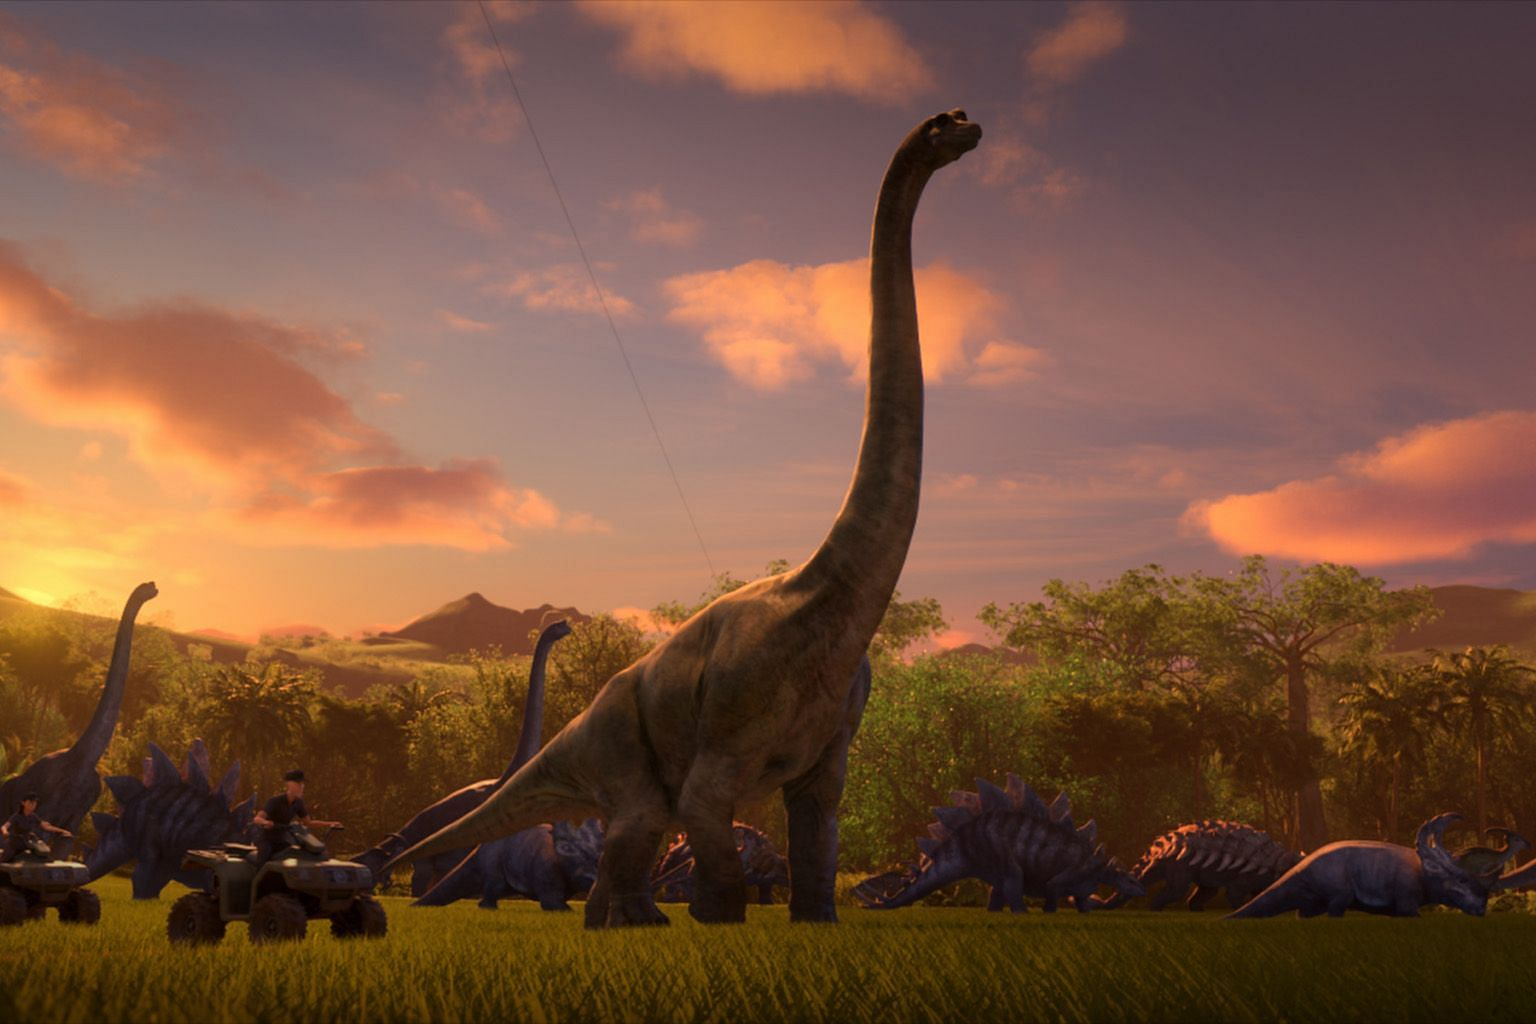 Executive producer Colin Trevorrow does not want the creatures to look cartoonish in Jurassic World: Camp Cretaceous.